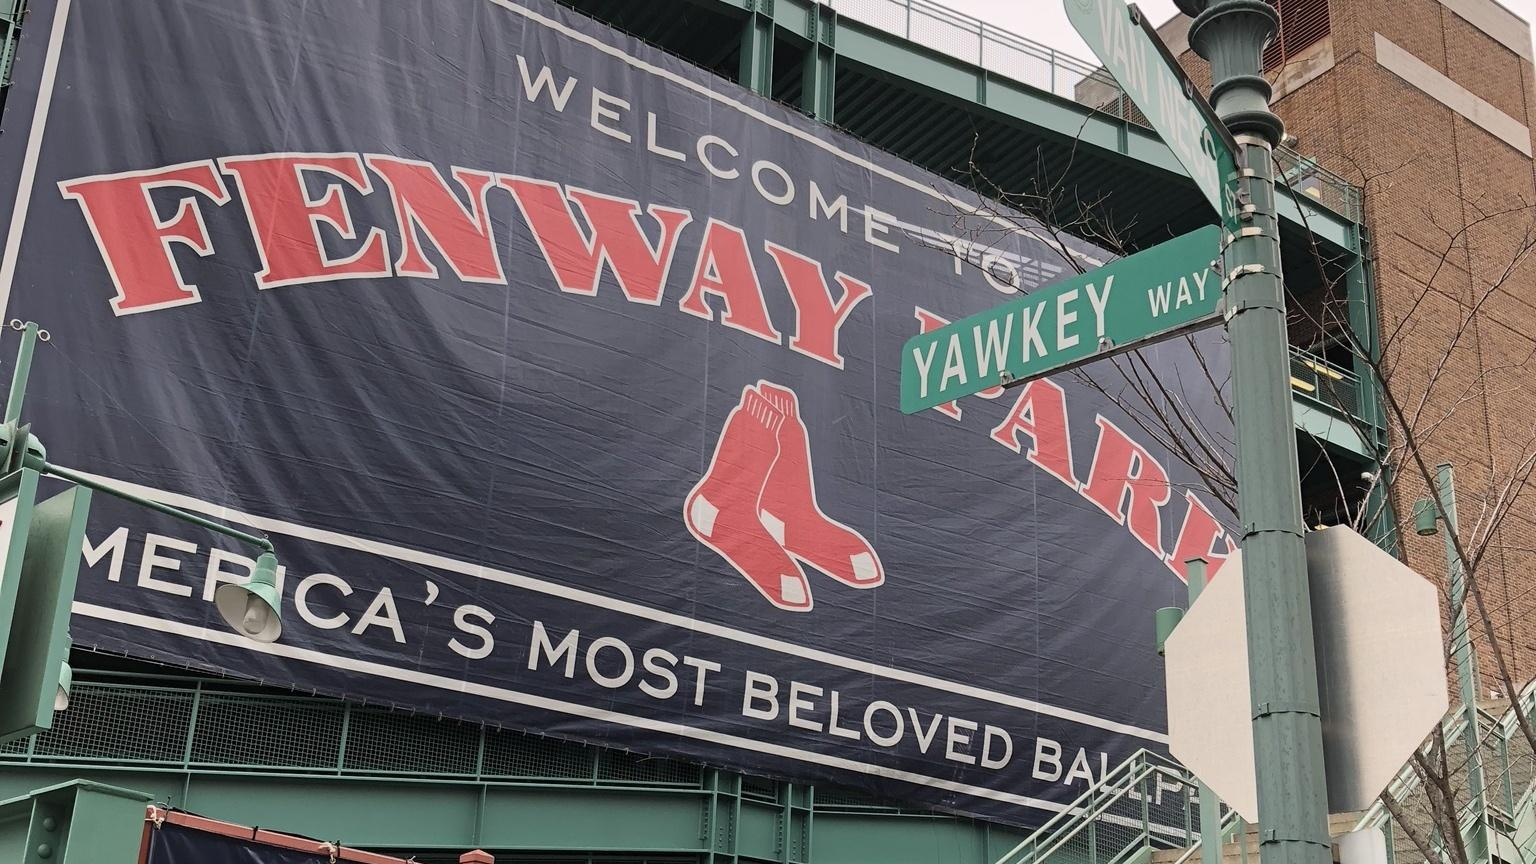 Yawkey Way Name Change Approved By Commission After Red Sox's Proposal